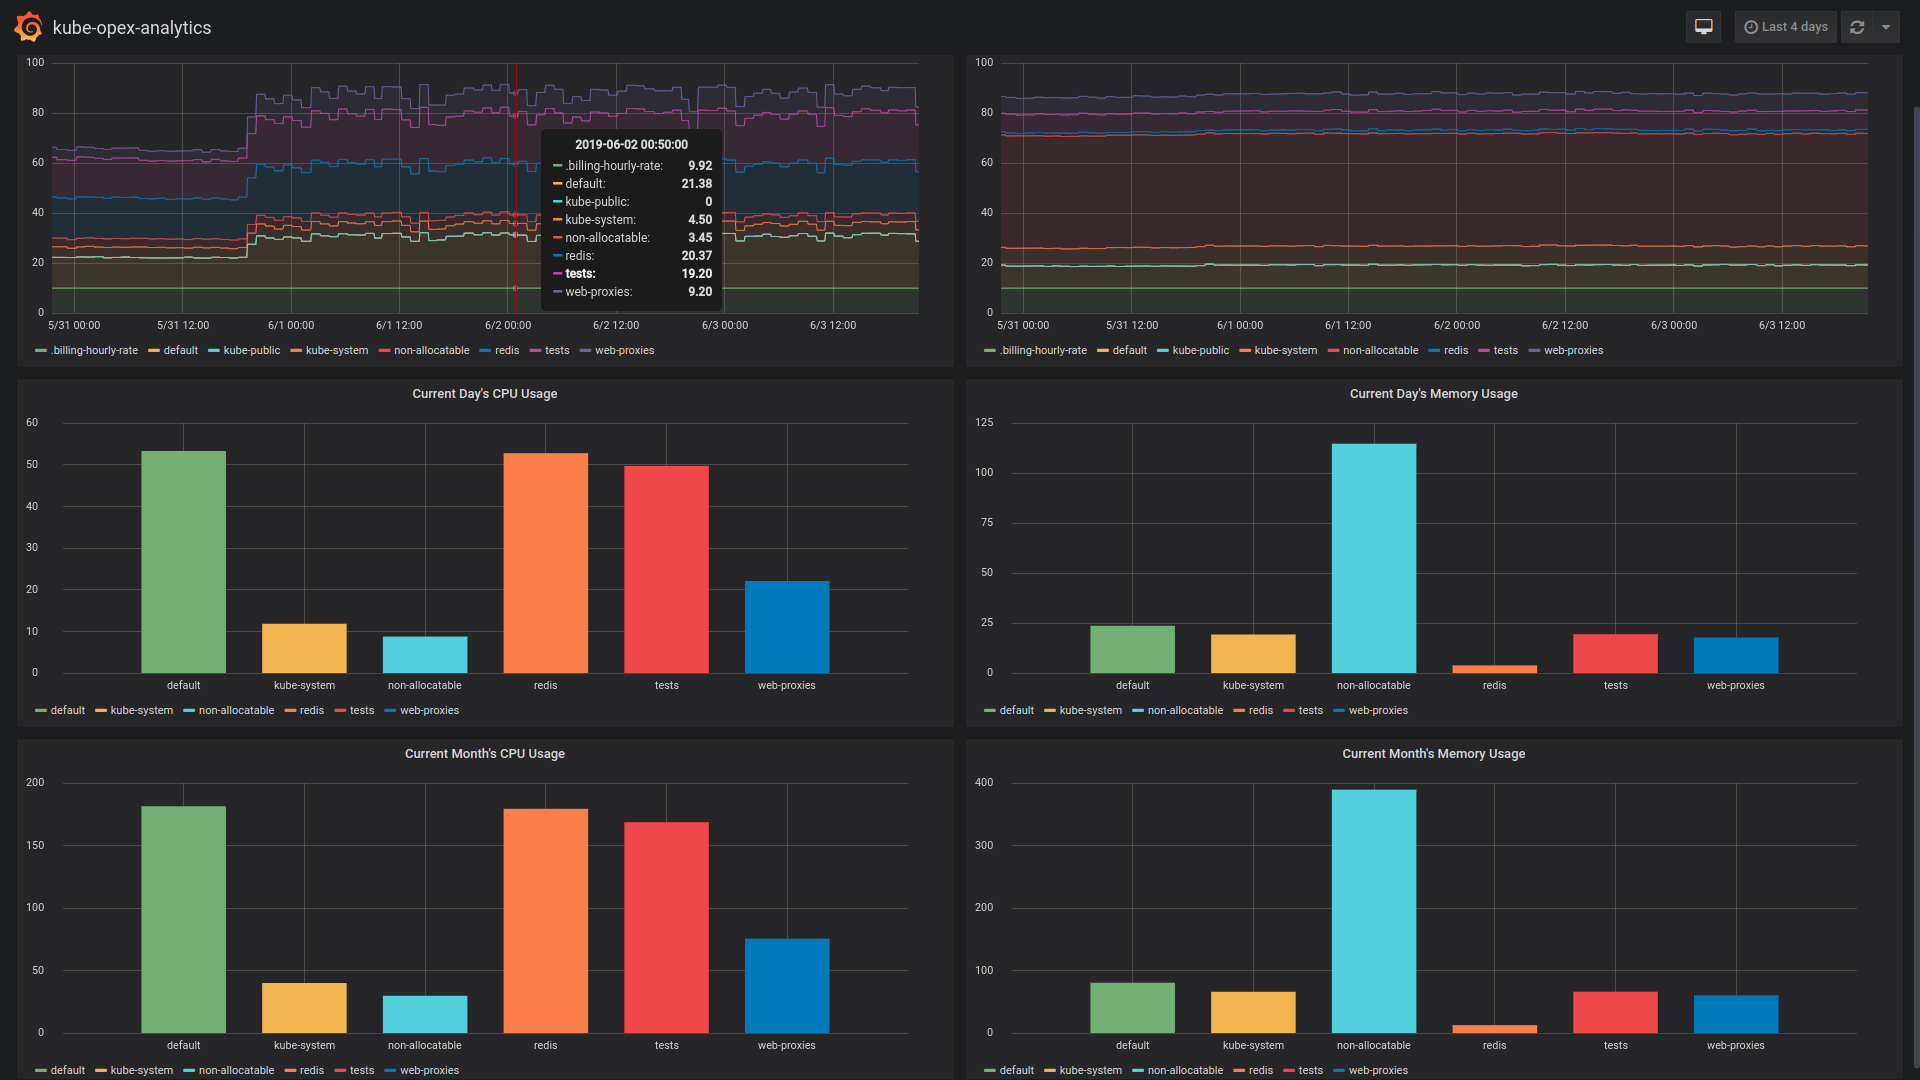 Bringing Prometheus Metrics and Grafana Dashboard for Cost